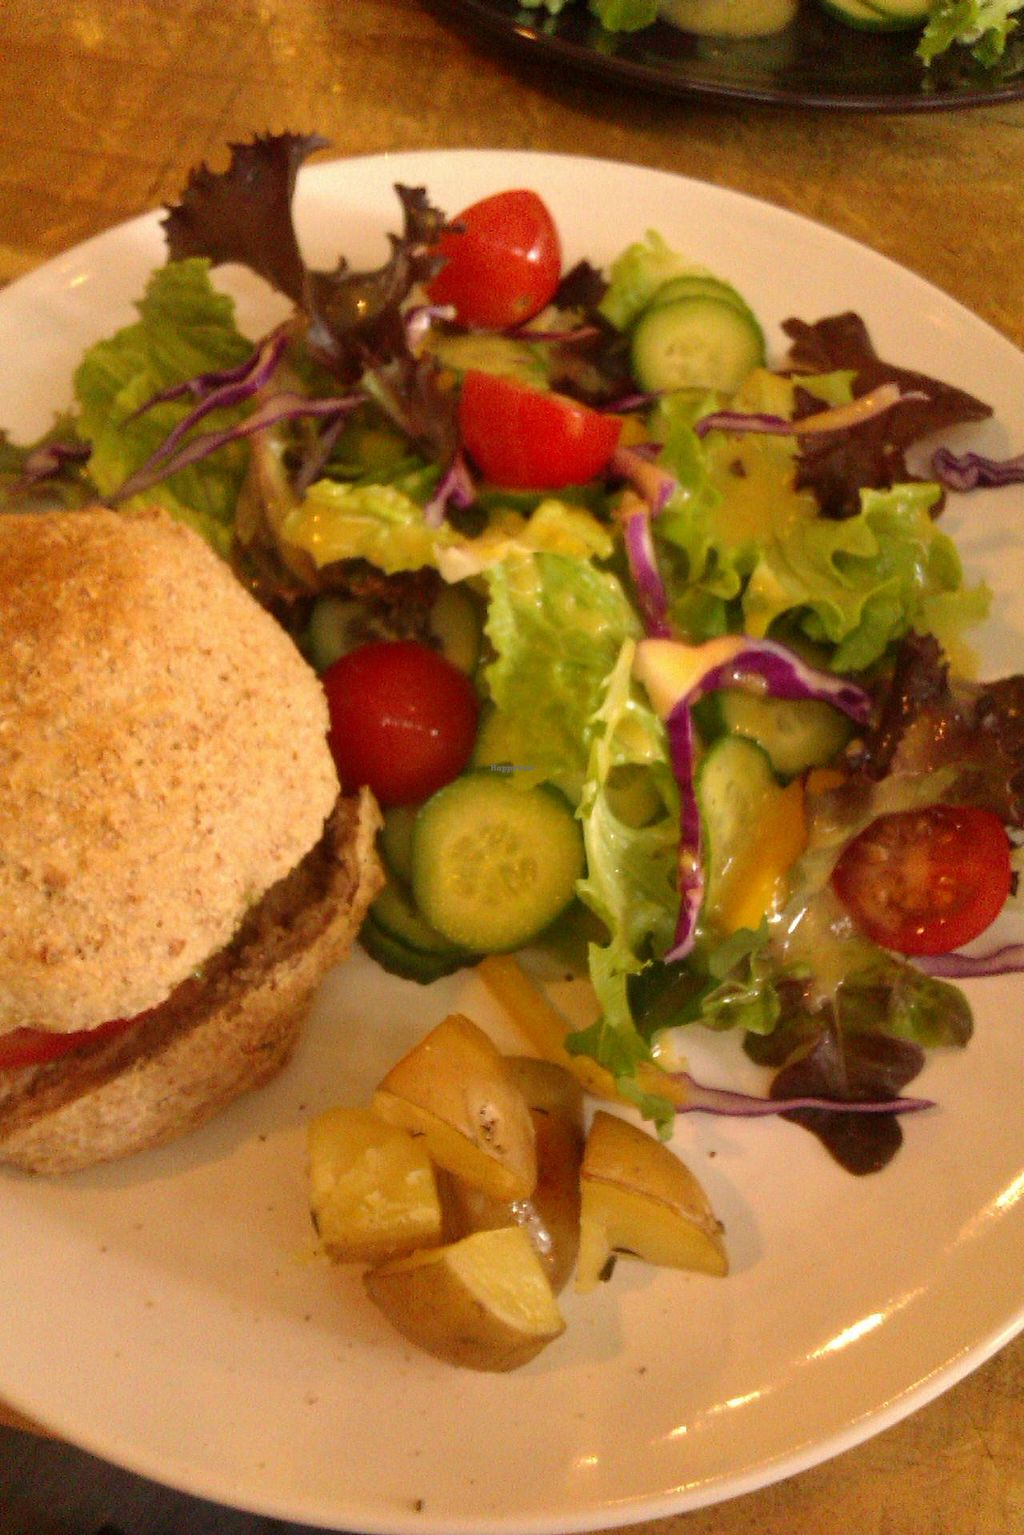 "Photo of CLOSED: Light Radiant Food  by <a href=""/members/profile/T2Veggie"">T2Veggie</a> <br/>Black bean burger and salad.  <br/> March 2, 2015  - <a href='/contact/abuse/image/45712/94496'>Report</a>"